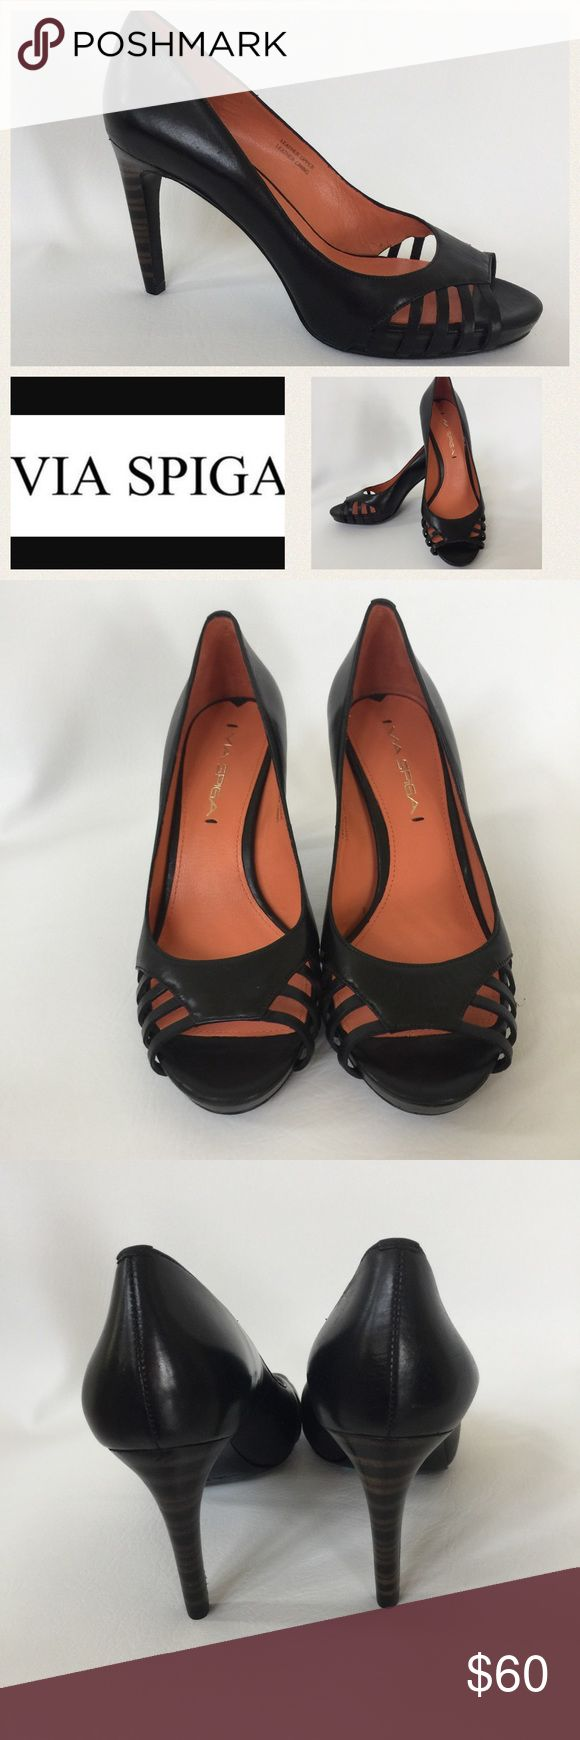 """NWT Via Spiga Black Leather Heels New with tag from Nordstrom Rack.  Black Leather Upper.  Size 6.  Open toe.  3.5"""" heel.  Size is 6M.  Original retail price $165.  Nordstrom Rack price $89.97.  Beautiful shoe at a HUGE saving!  Logo is internet stock photo. Via Spiga Shoes Heels"""